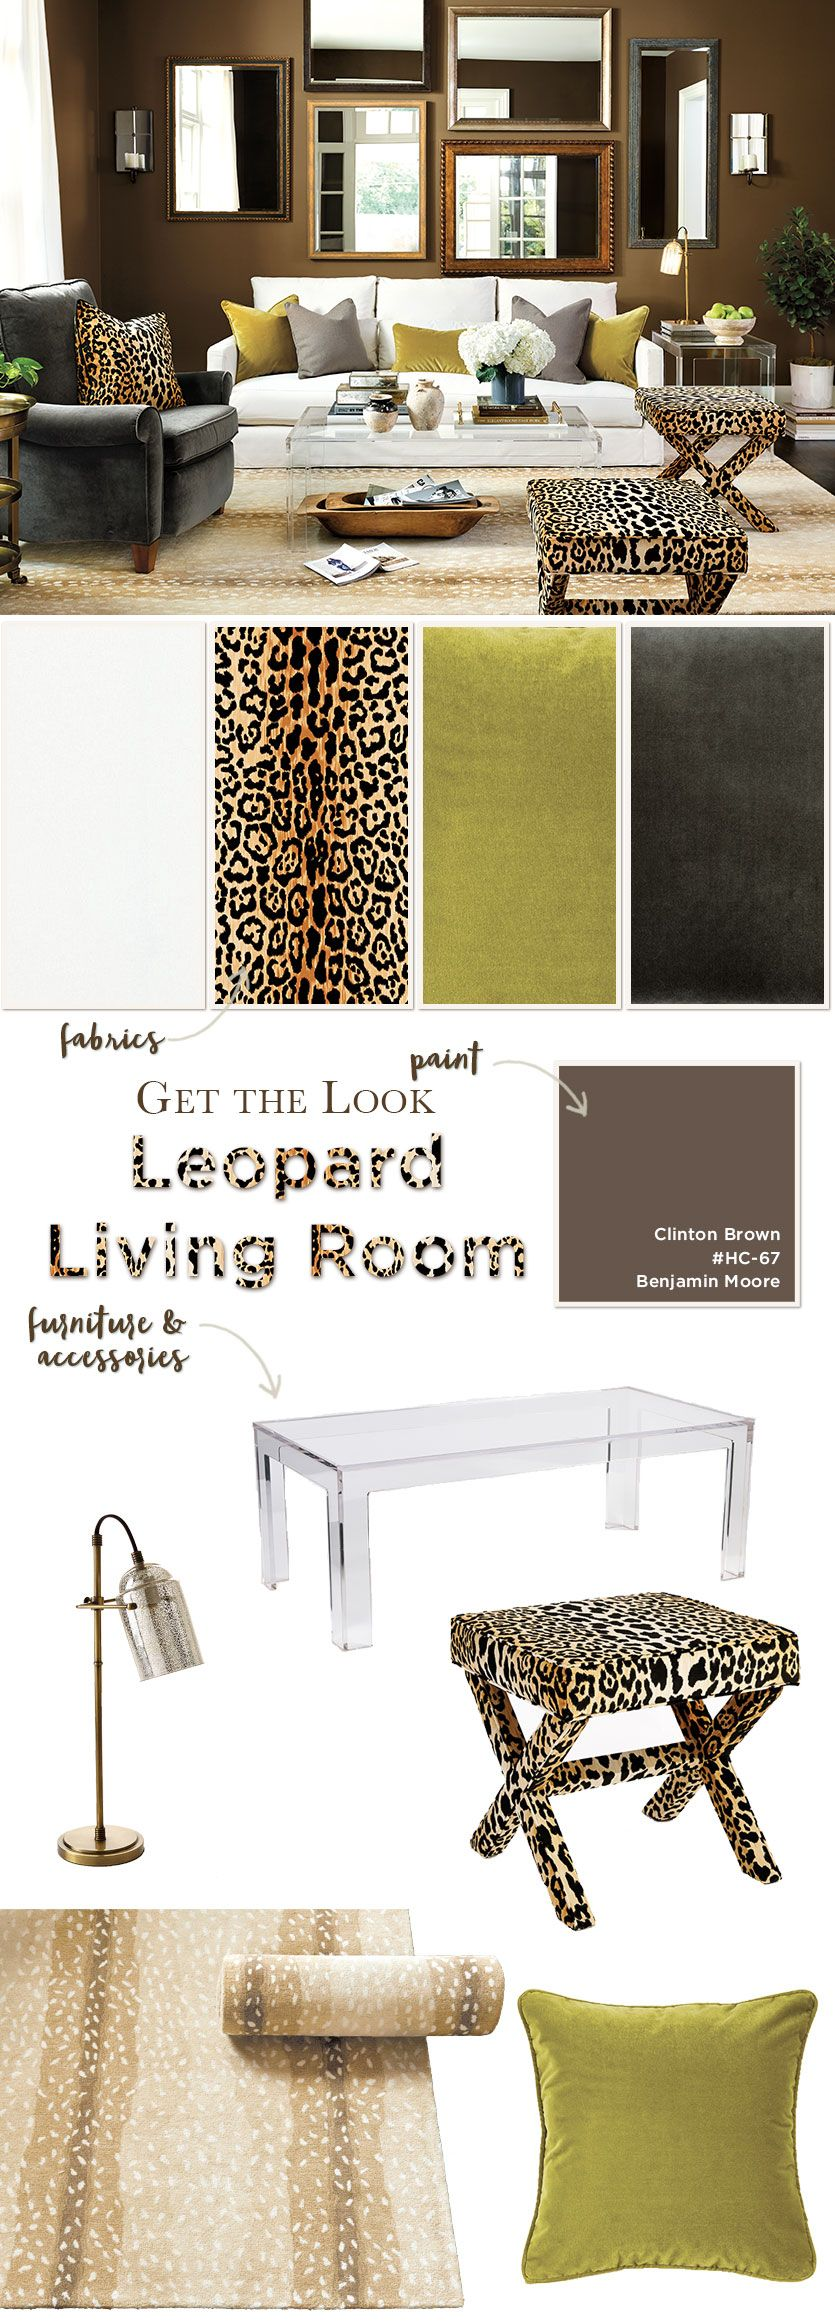 Get the Look: Chic, Leopard Living Room   Decorative ...